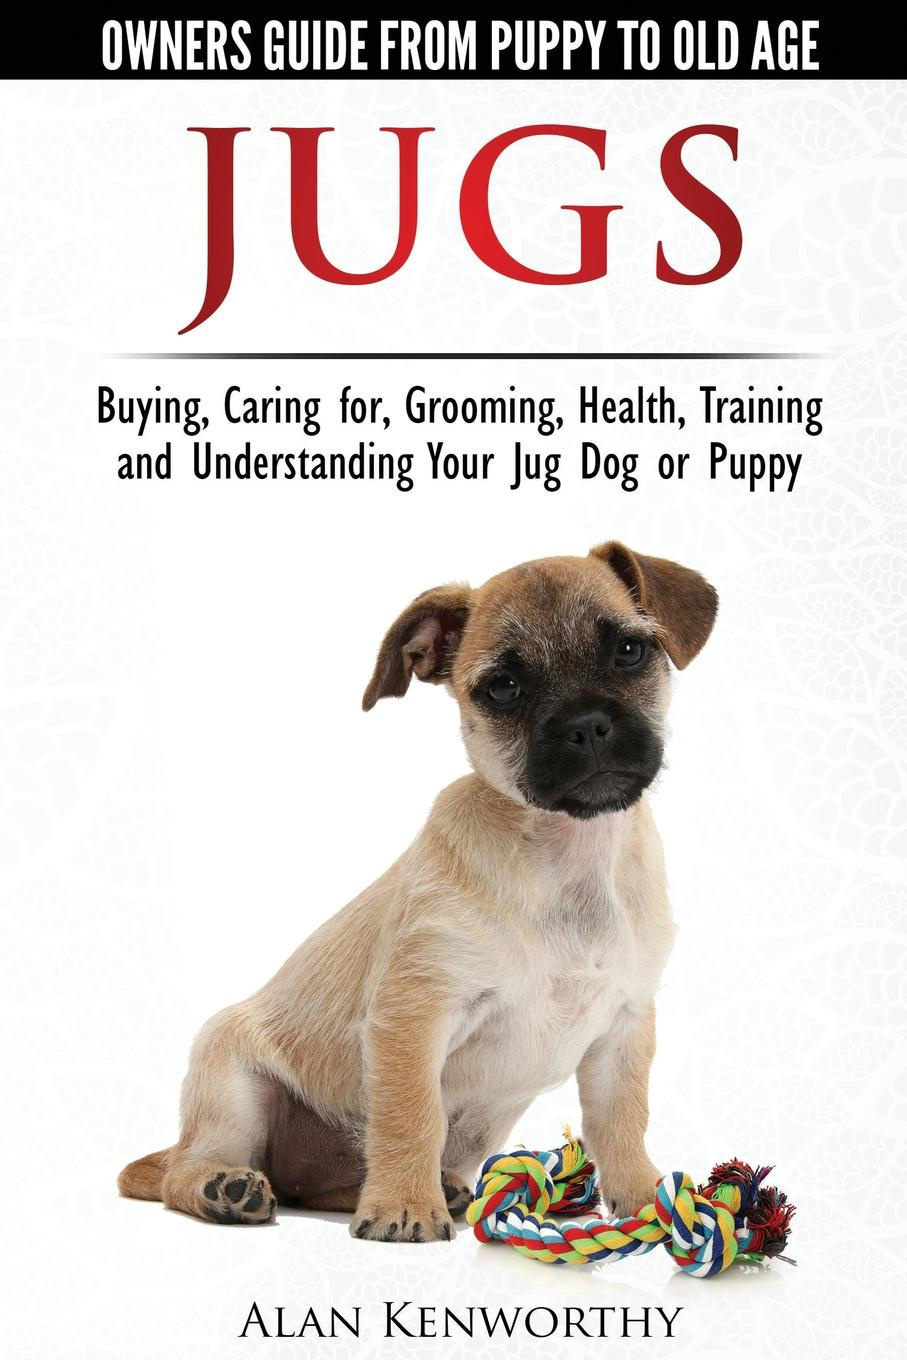 Alan Kenworthy Jug Dogs (Jugs) - Owners Guide from Puppy to Old Age. Buying, Caring For, Grooming, Health, Training and Understanding Your Jug michael burchell no excuses how you can turn any workplace into a great one